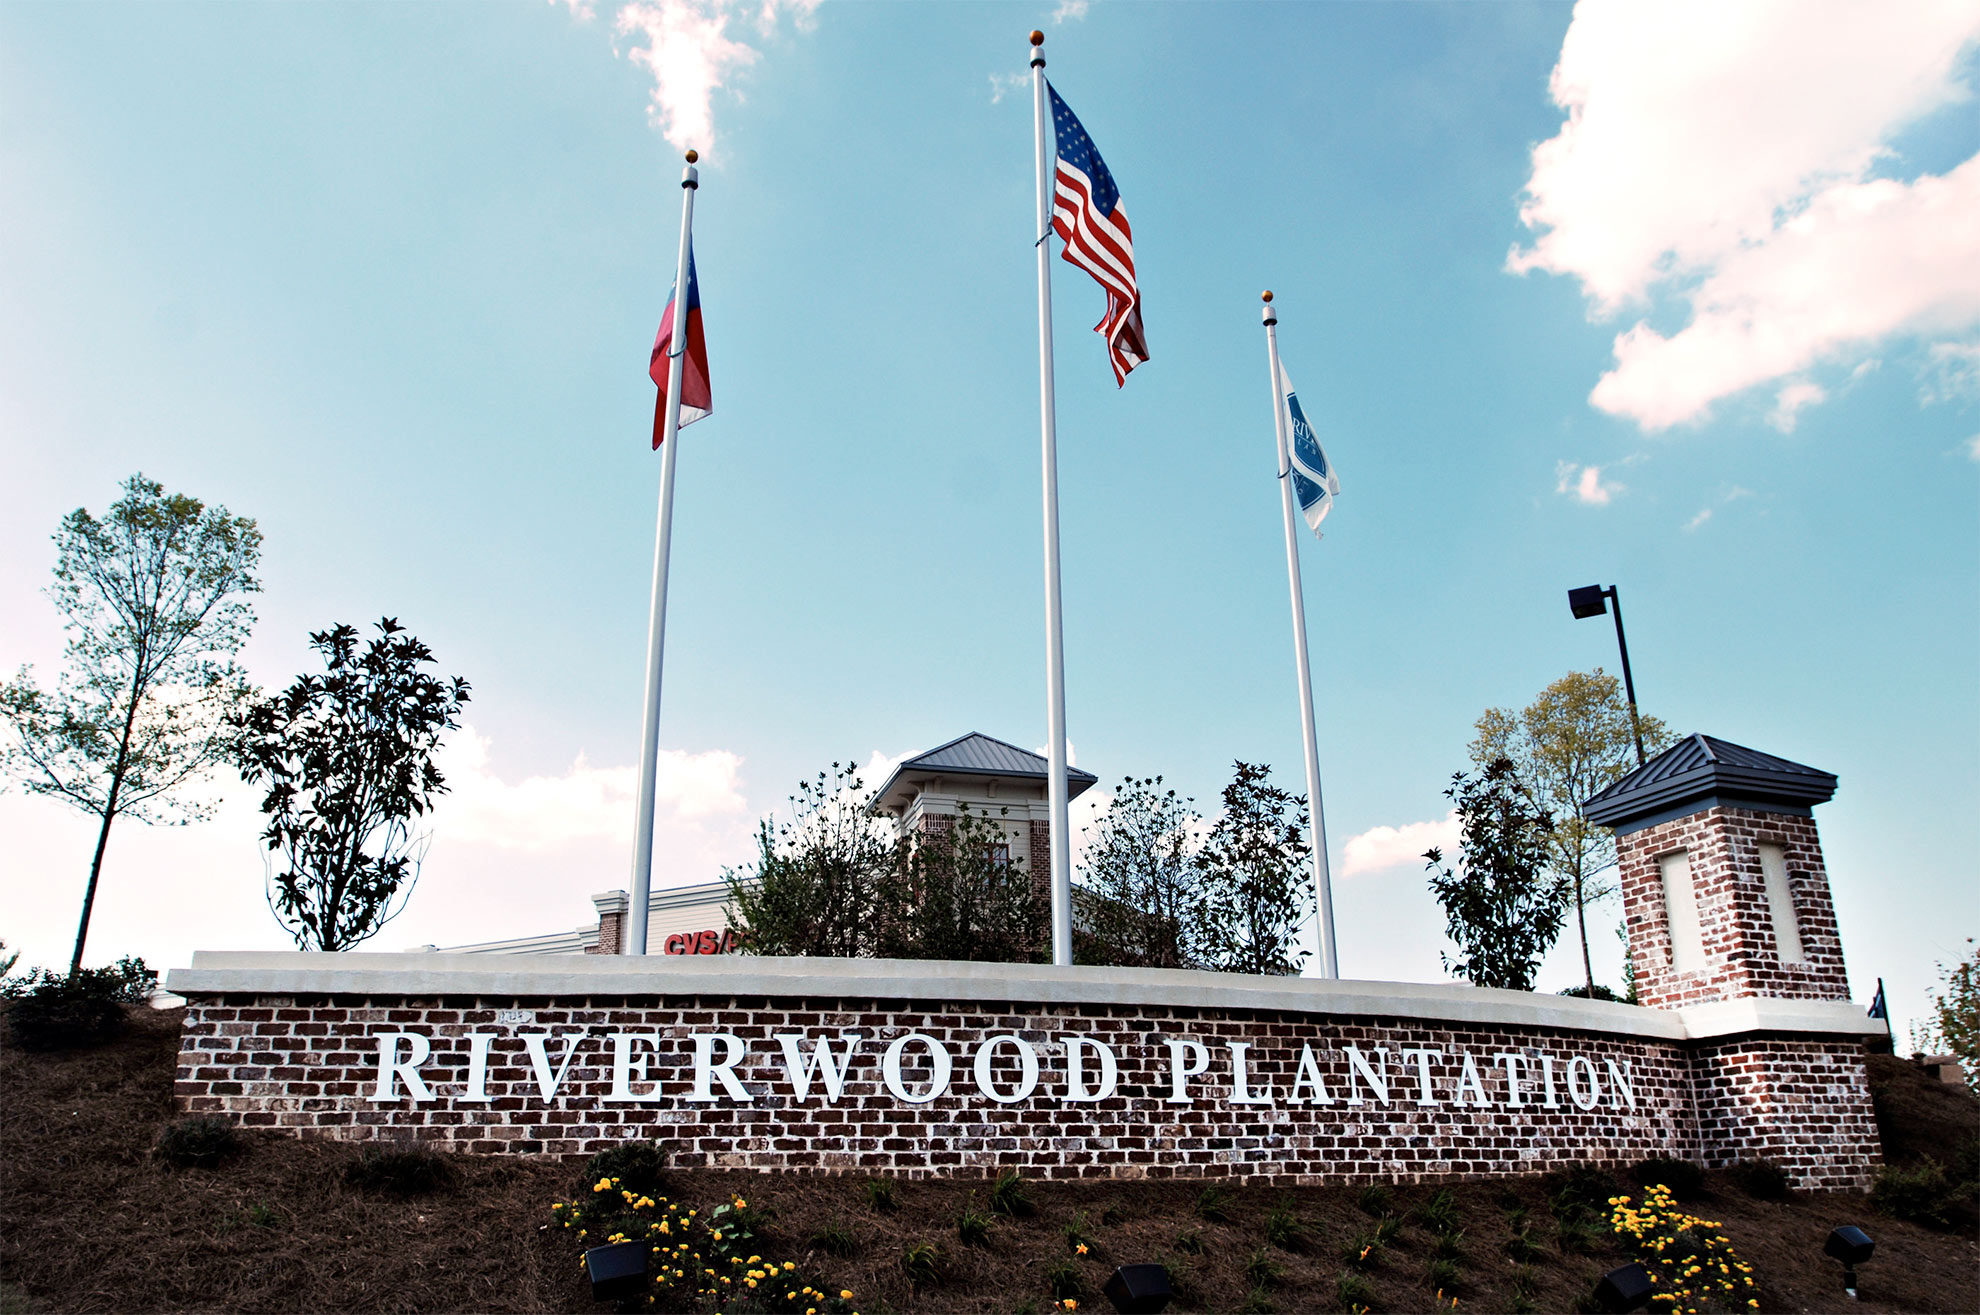 riverwood-plantation-entrance-with-flags